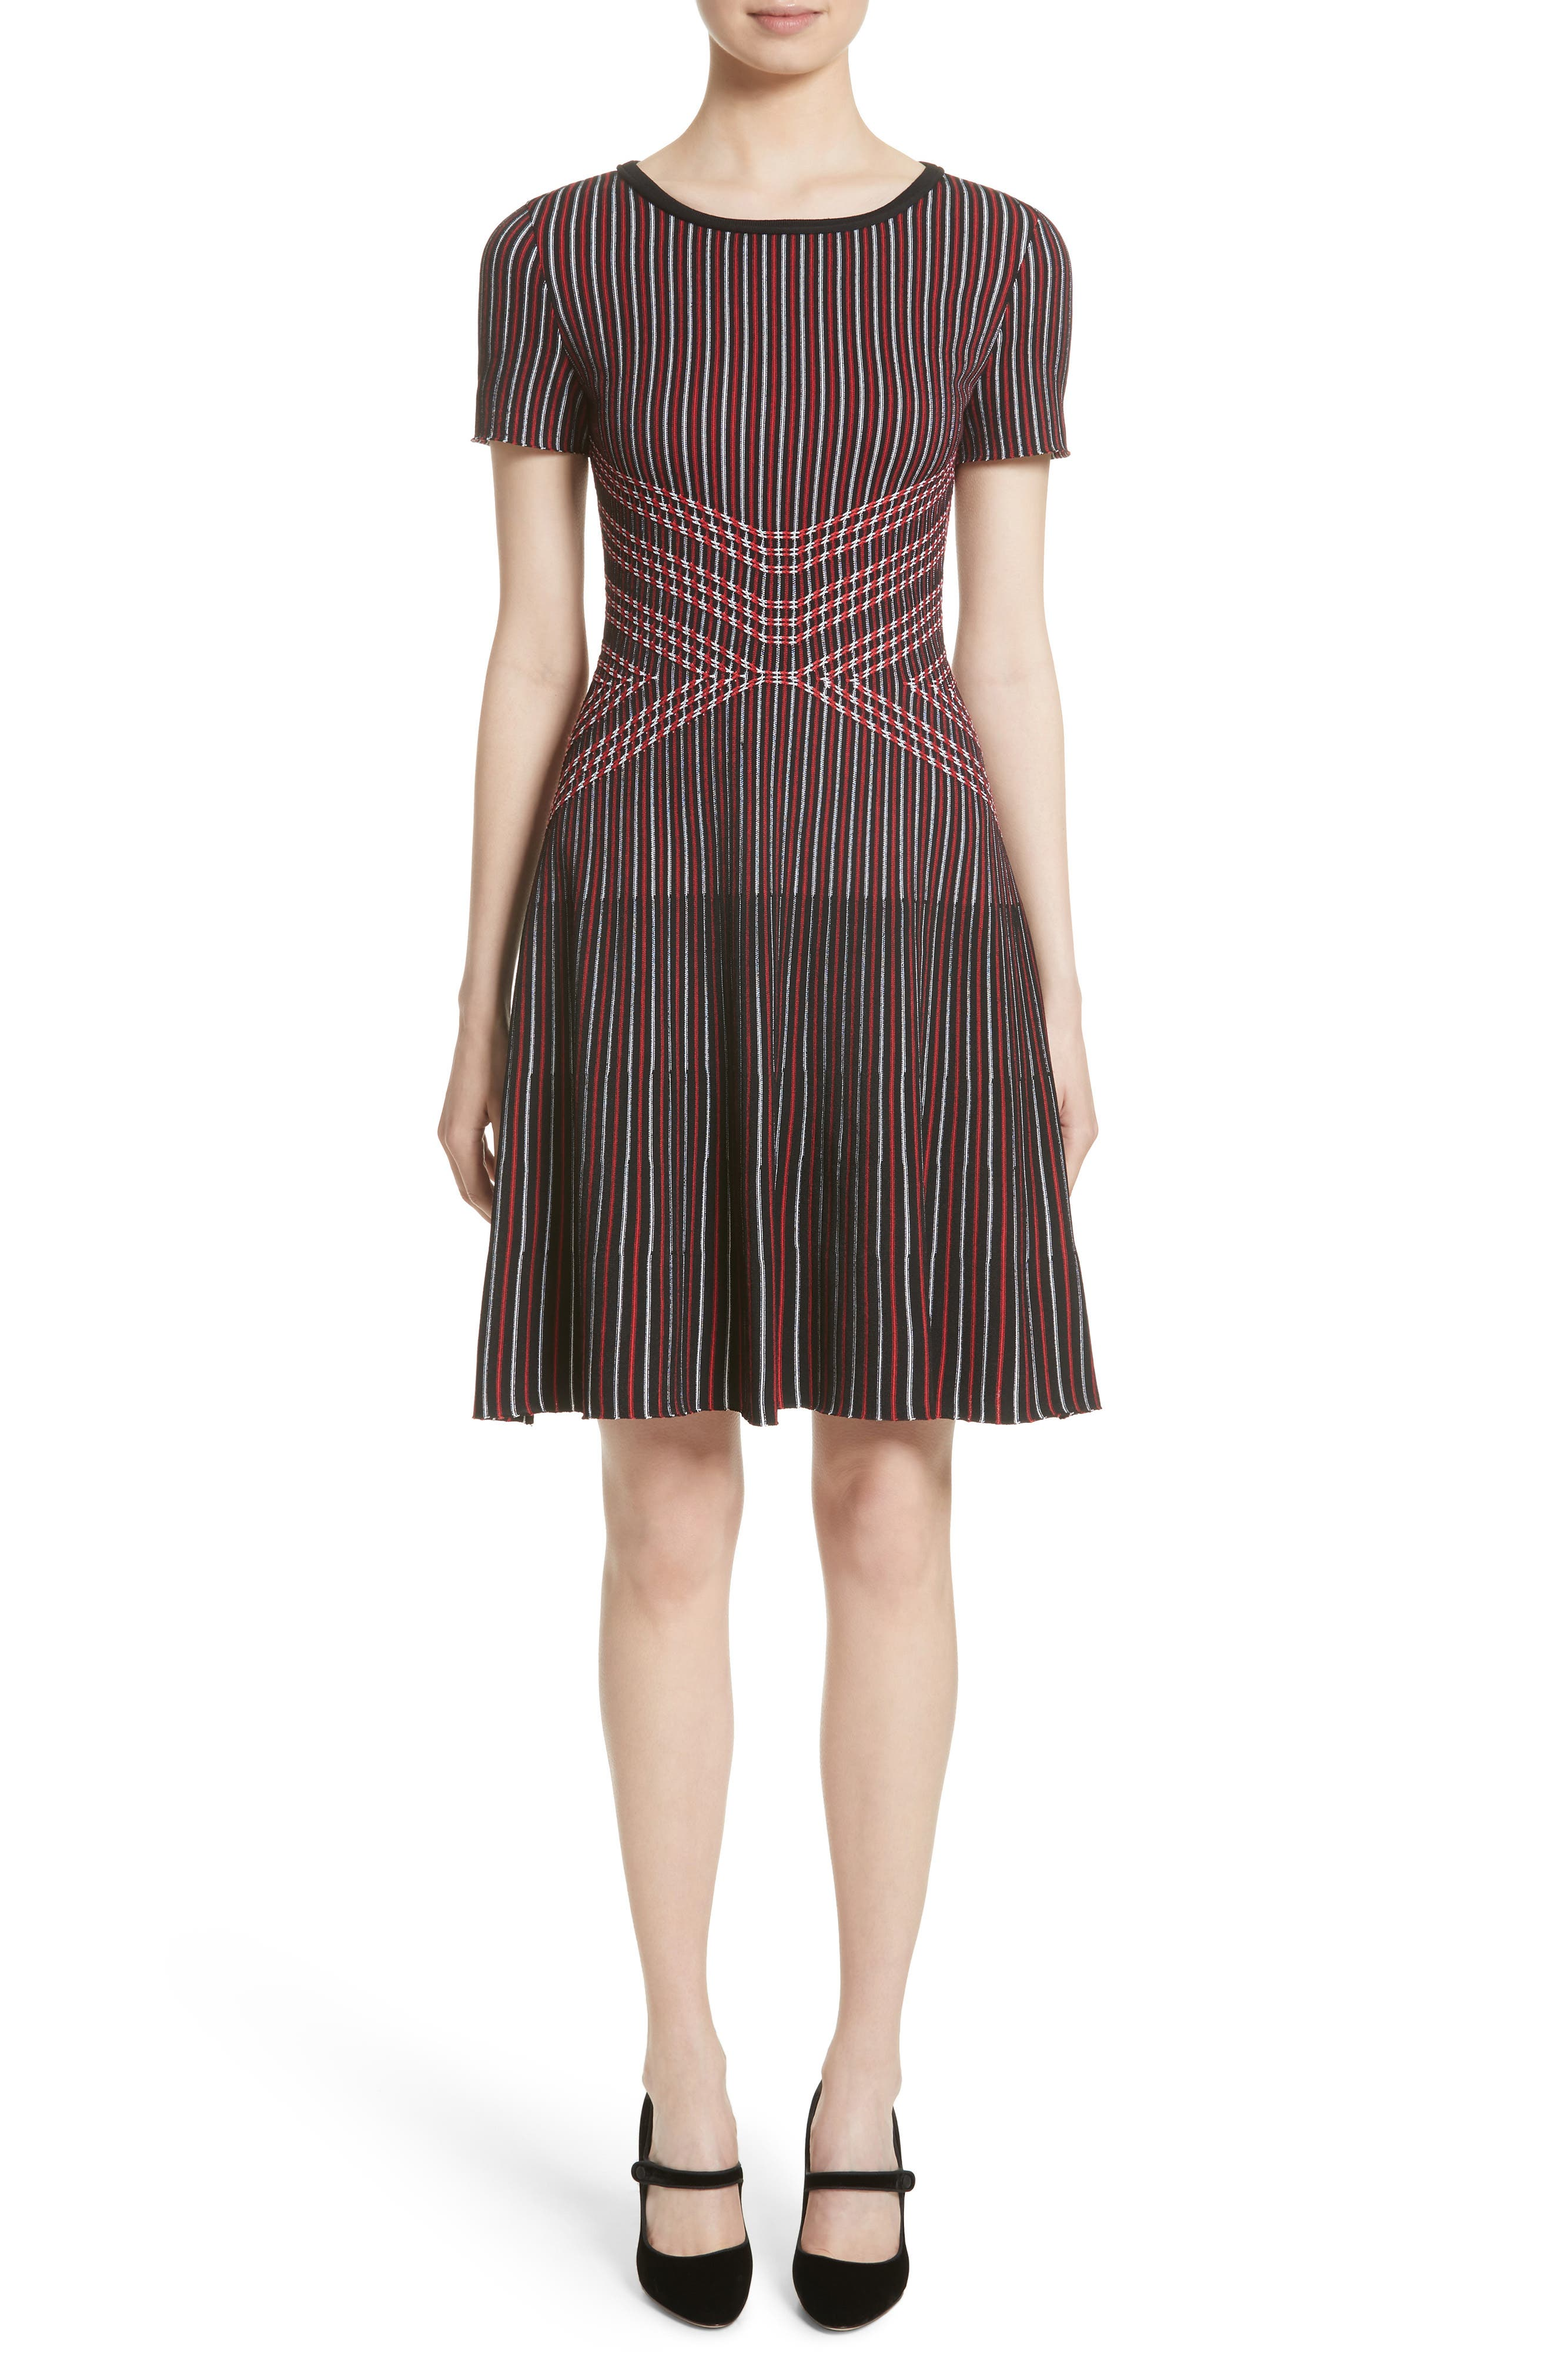 St. John Collection Atlantis Knit Fit & Flare Dress (Nordstrom Exclusive)